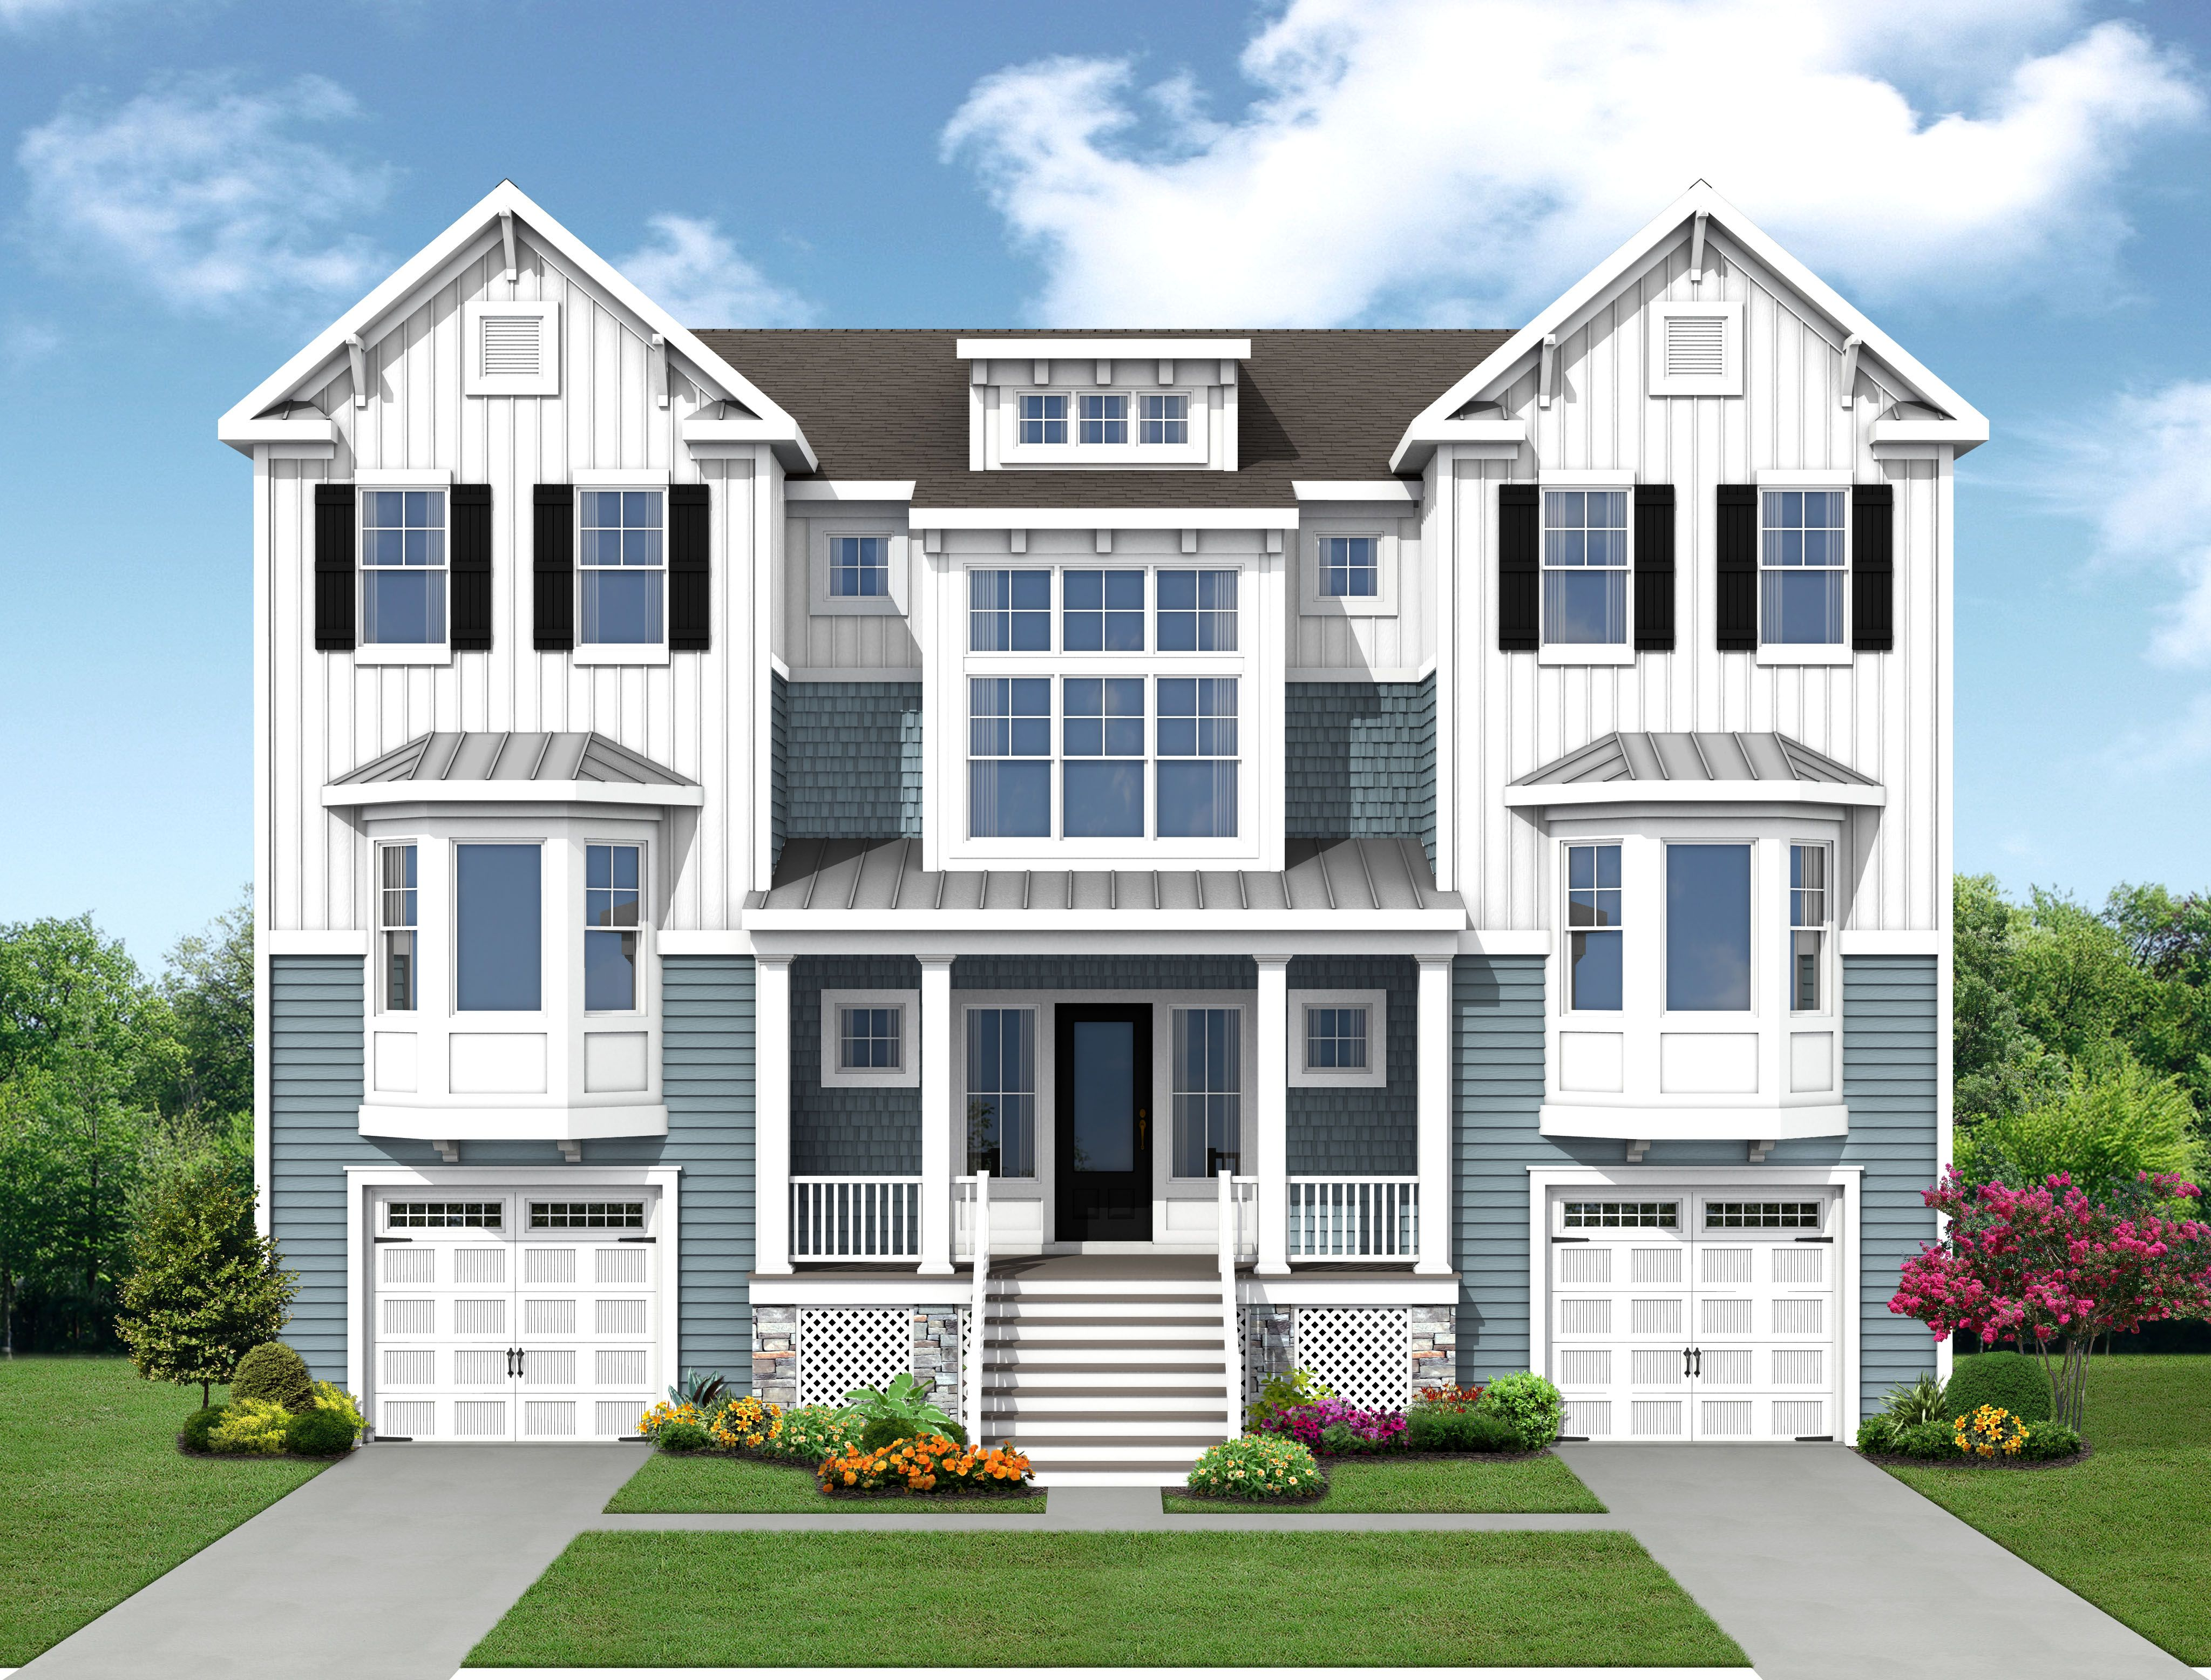 Single Family for Active at Bayside - The Anegada 20811 Harbor Cove Selbyville, Delaware 19975 United States